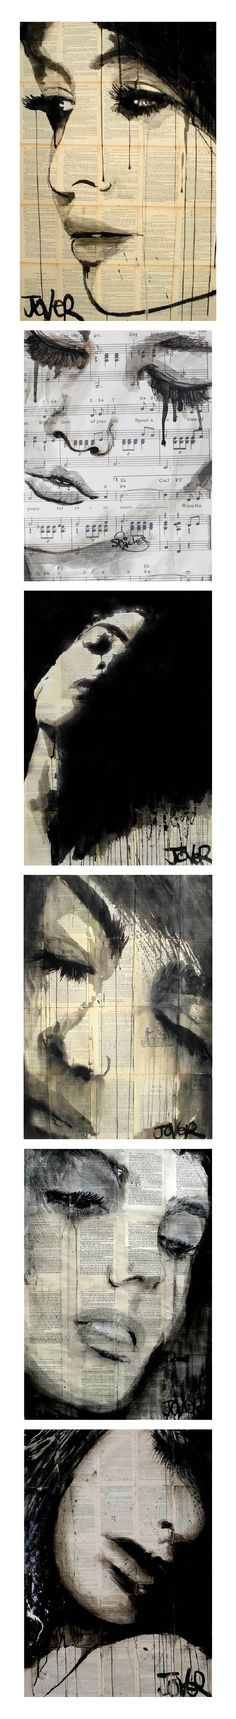 Art by Loui Jover - In Saatchi Online. if i may this painting speeks sensual sorrows to me